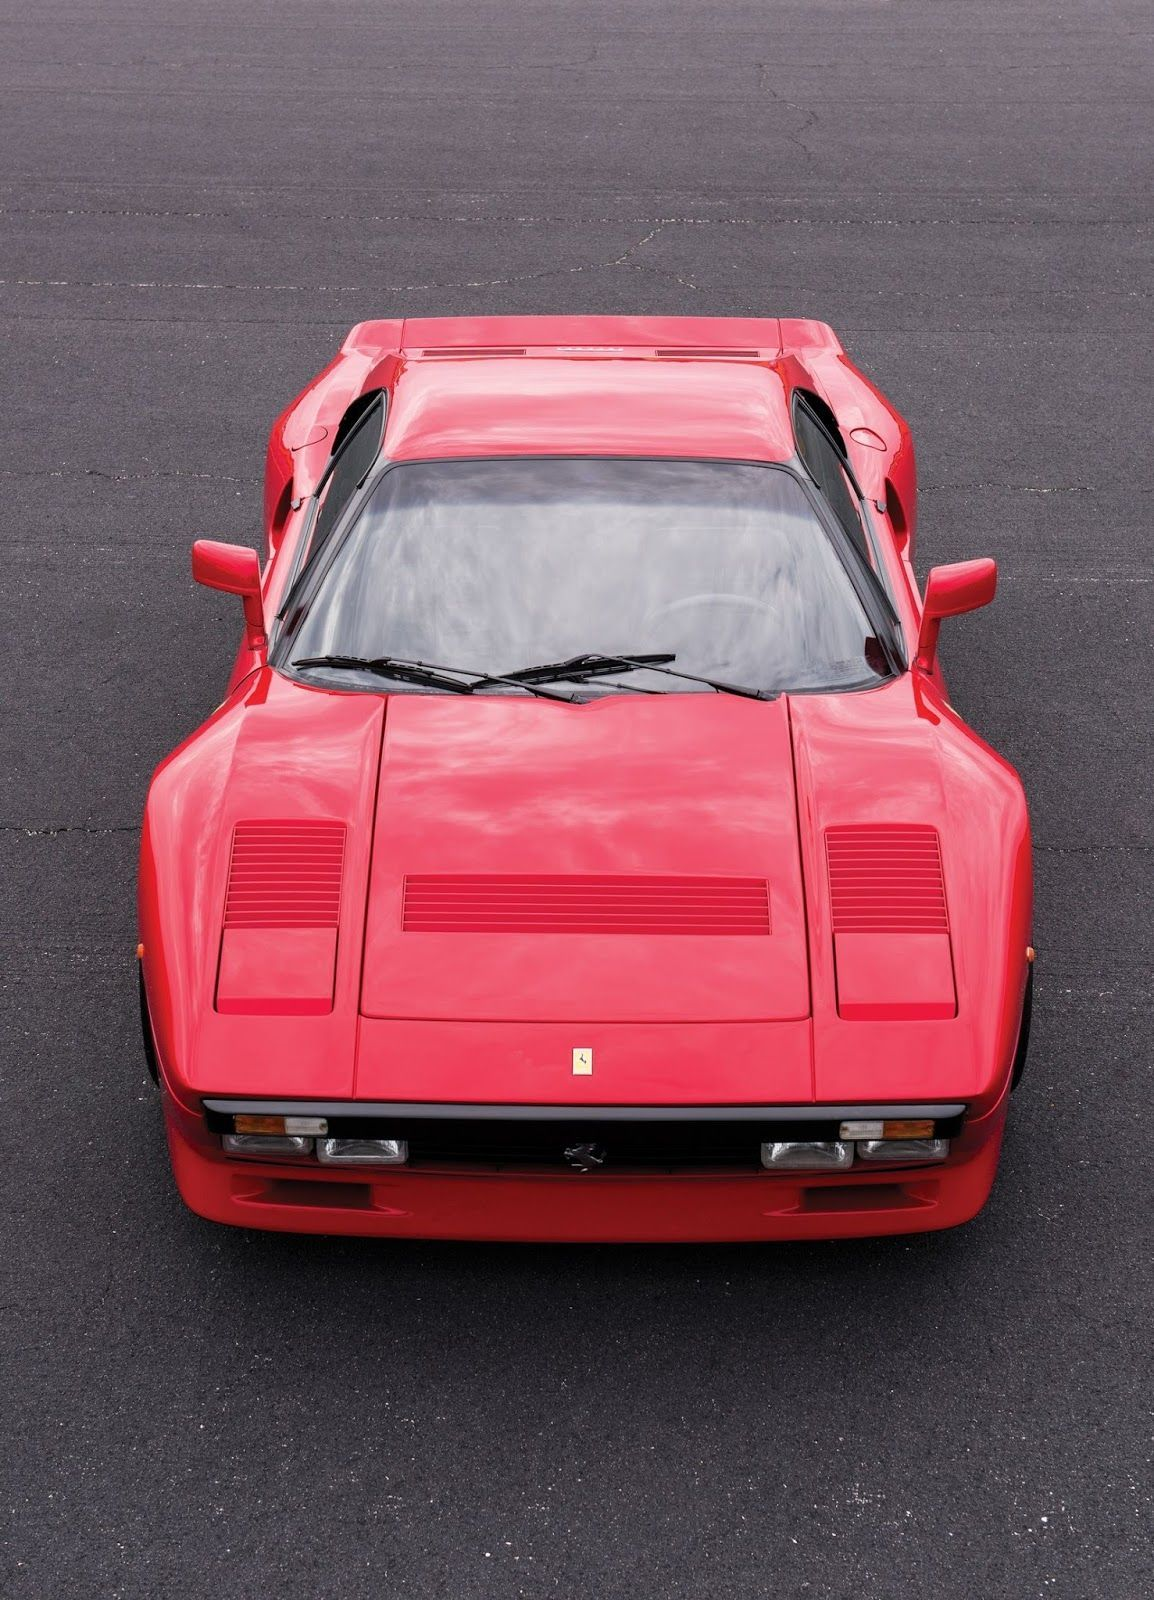 Ferrari 288 Gto Could Fetch 2 8 Million At Auction